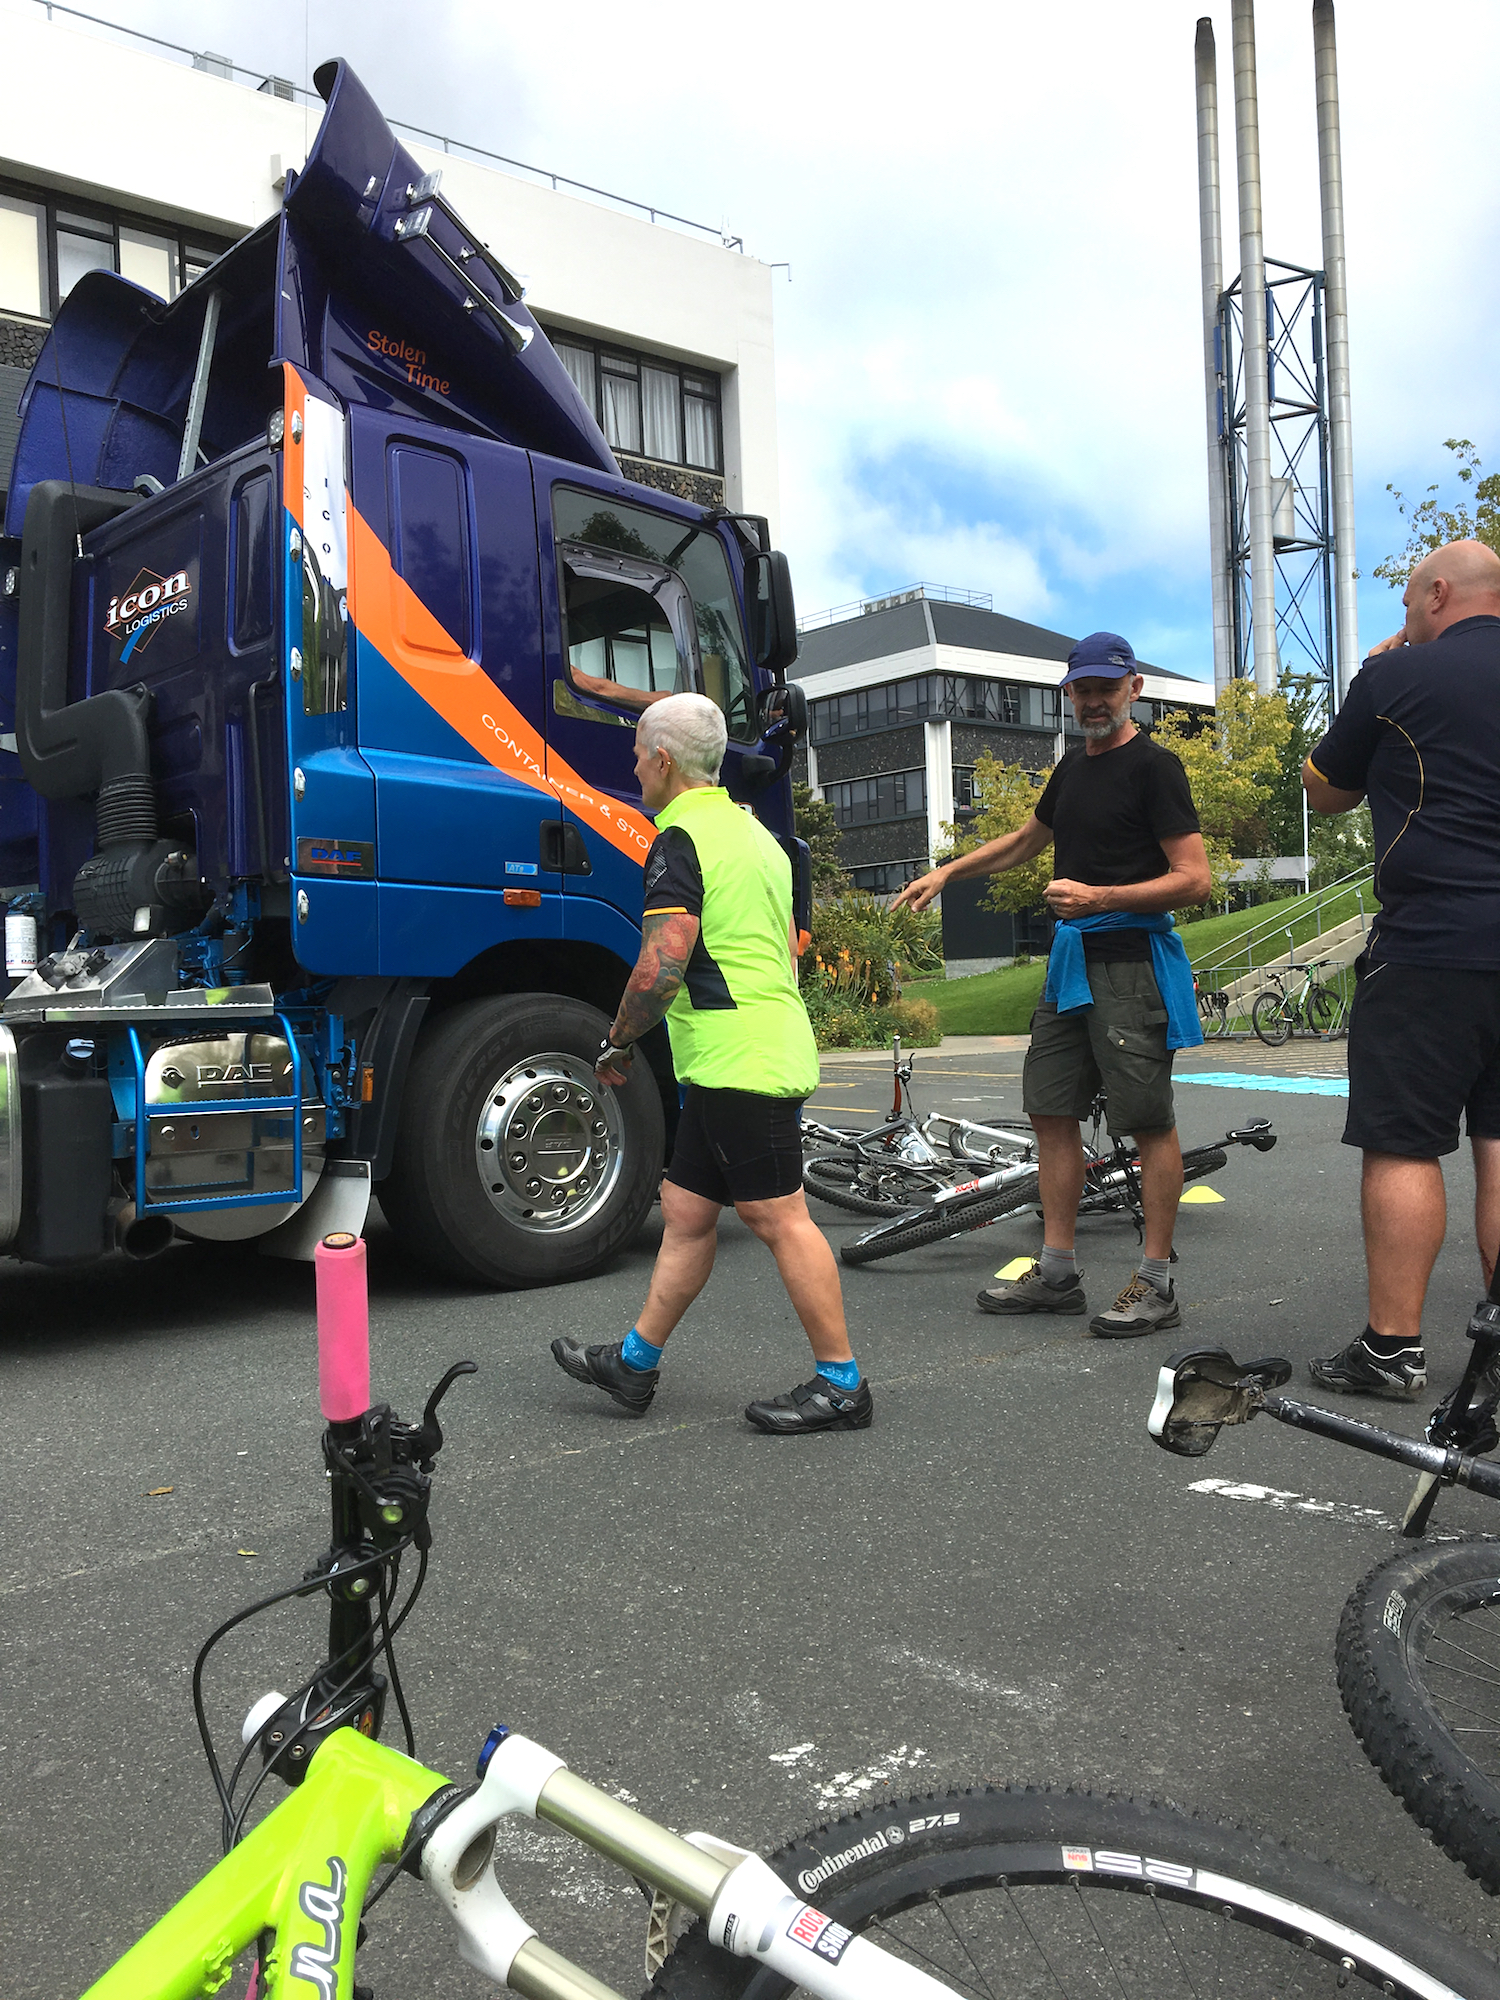 Dunedin-CyclistsTakeTurns copy.jpg